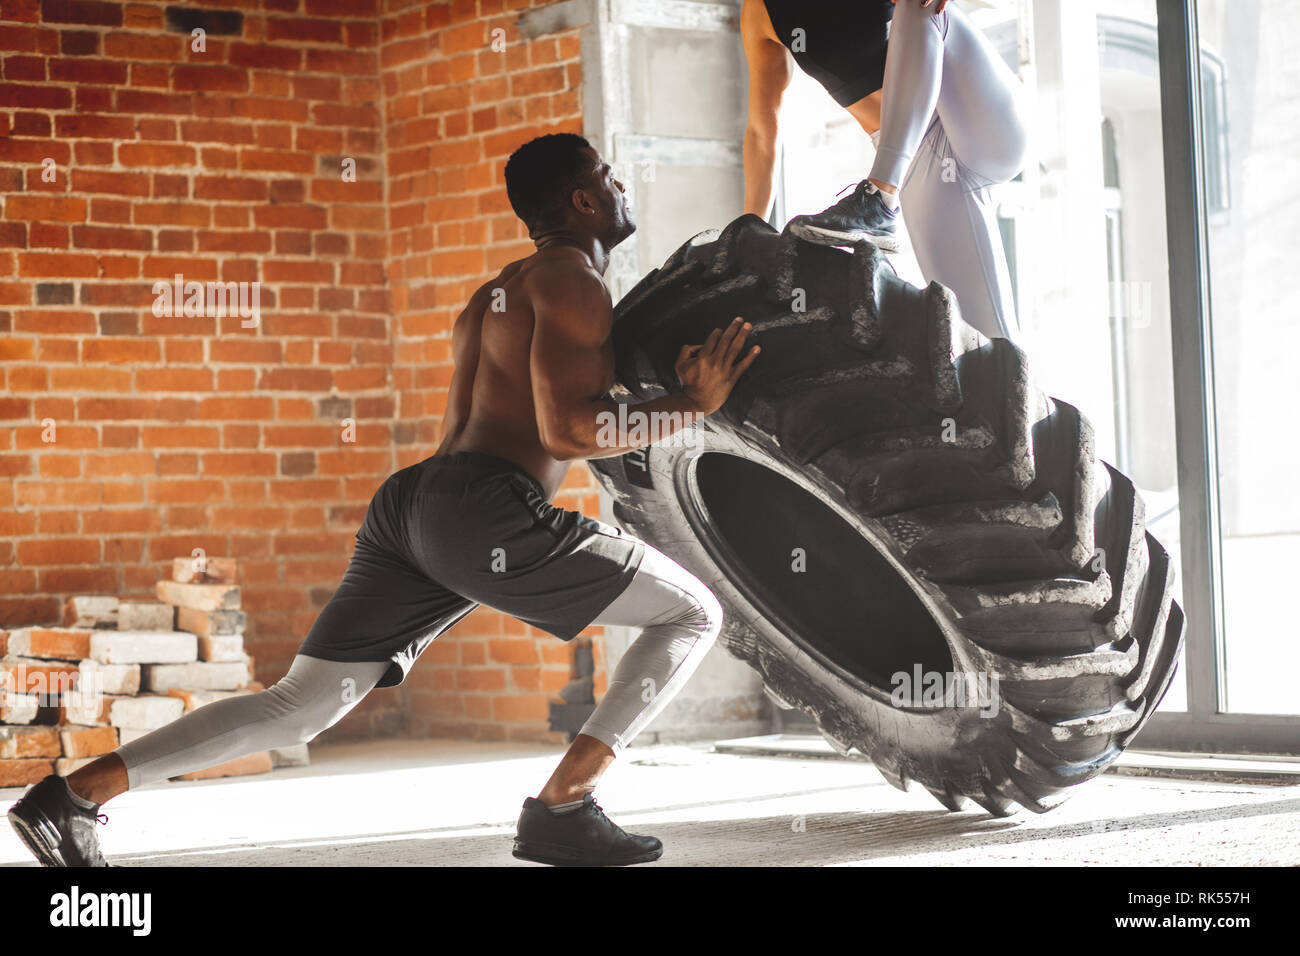 Young muscular african man flipping a tire with a woman on it, working out with weighting Stock Photo